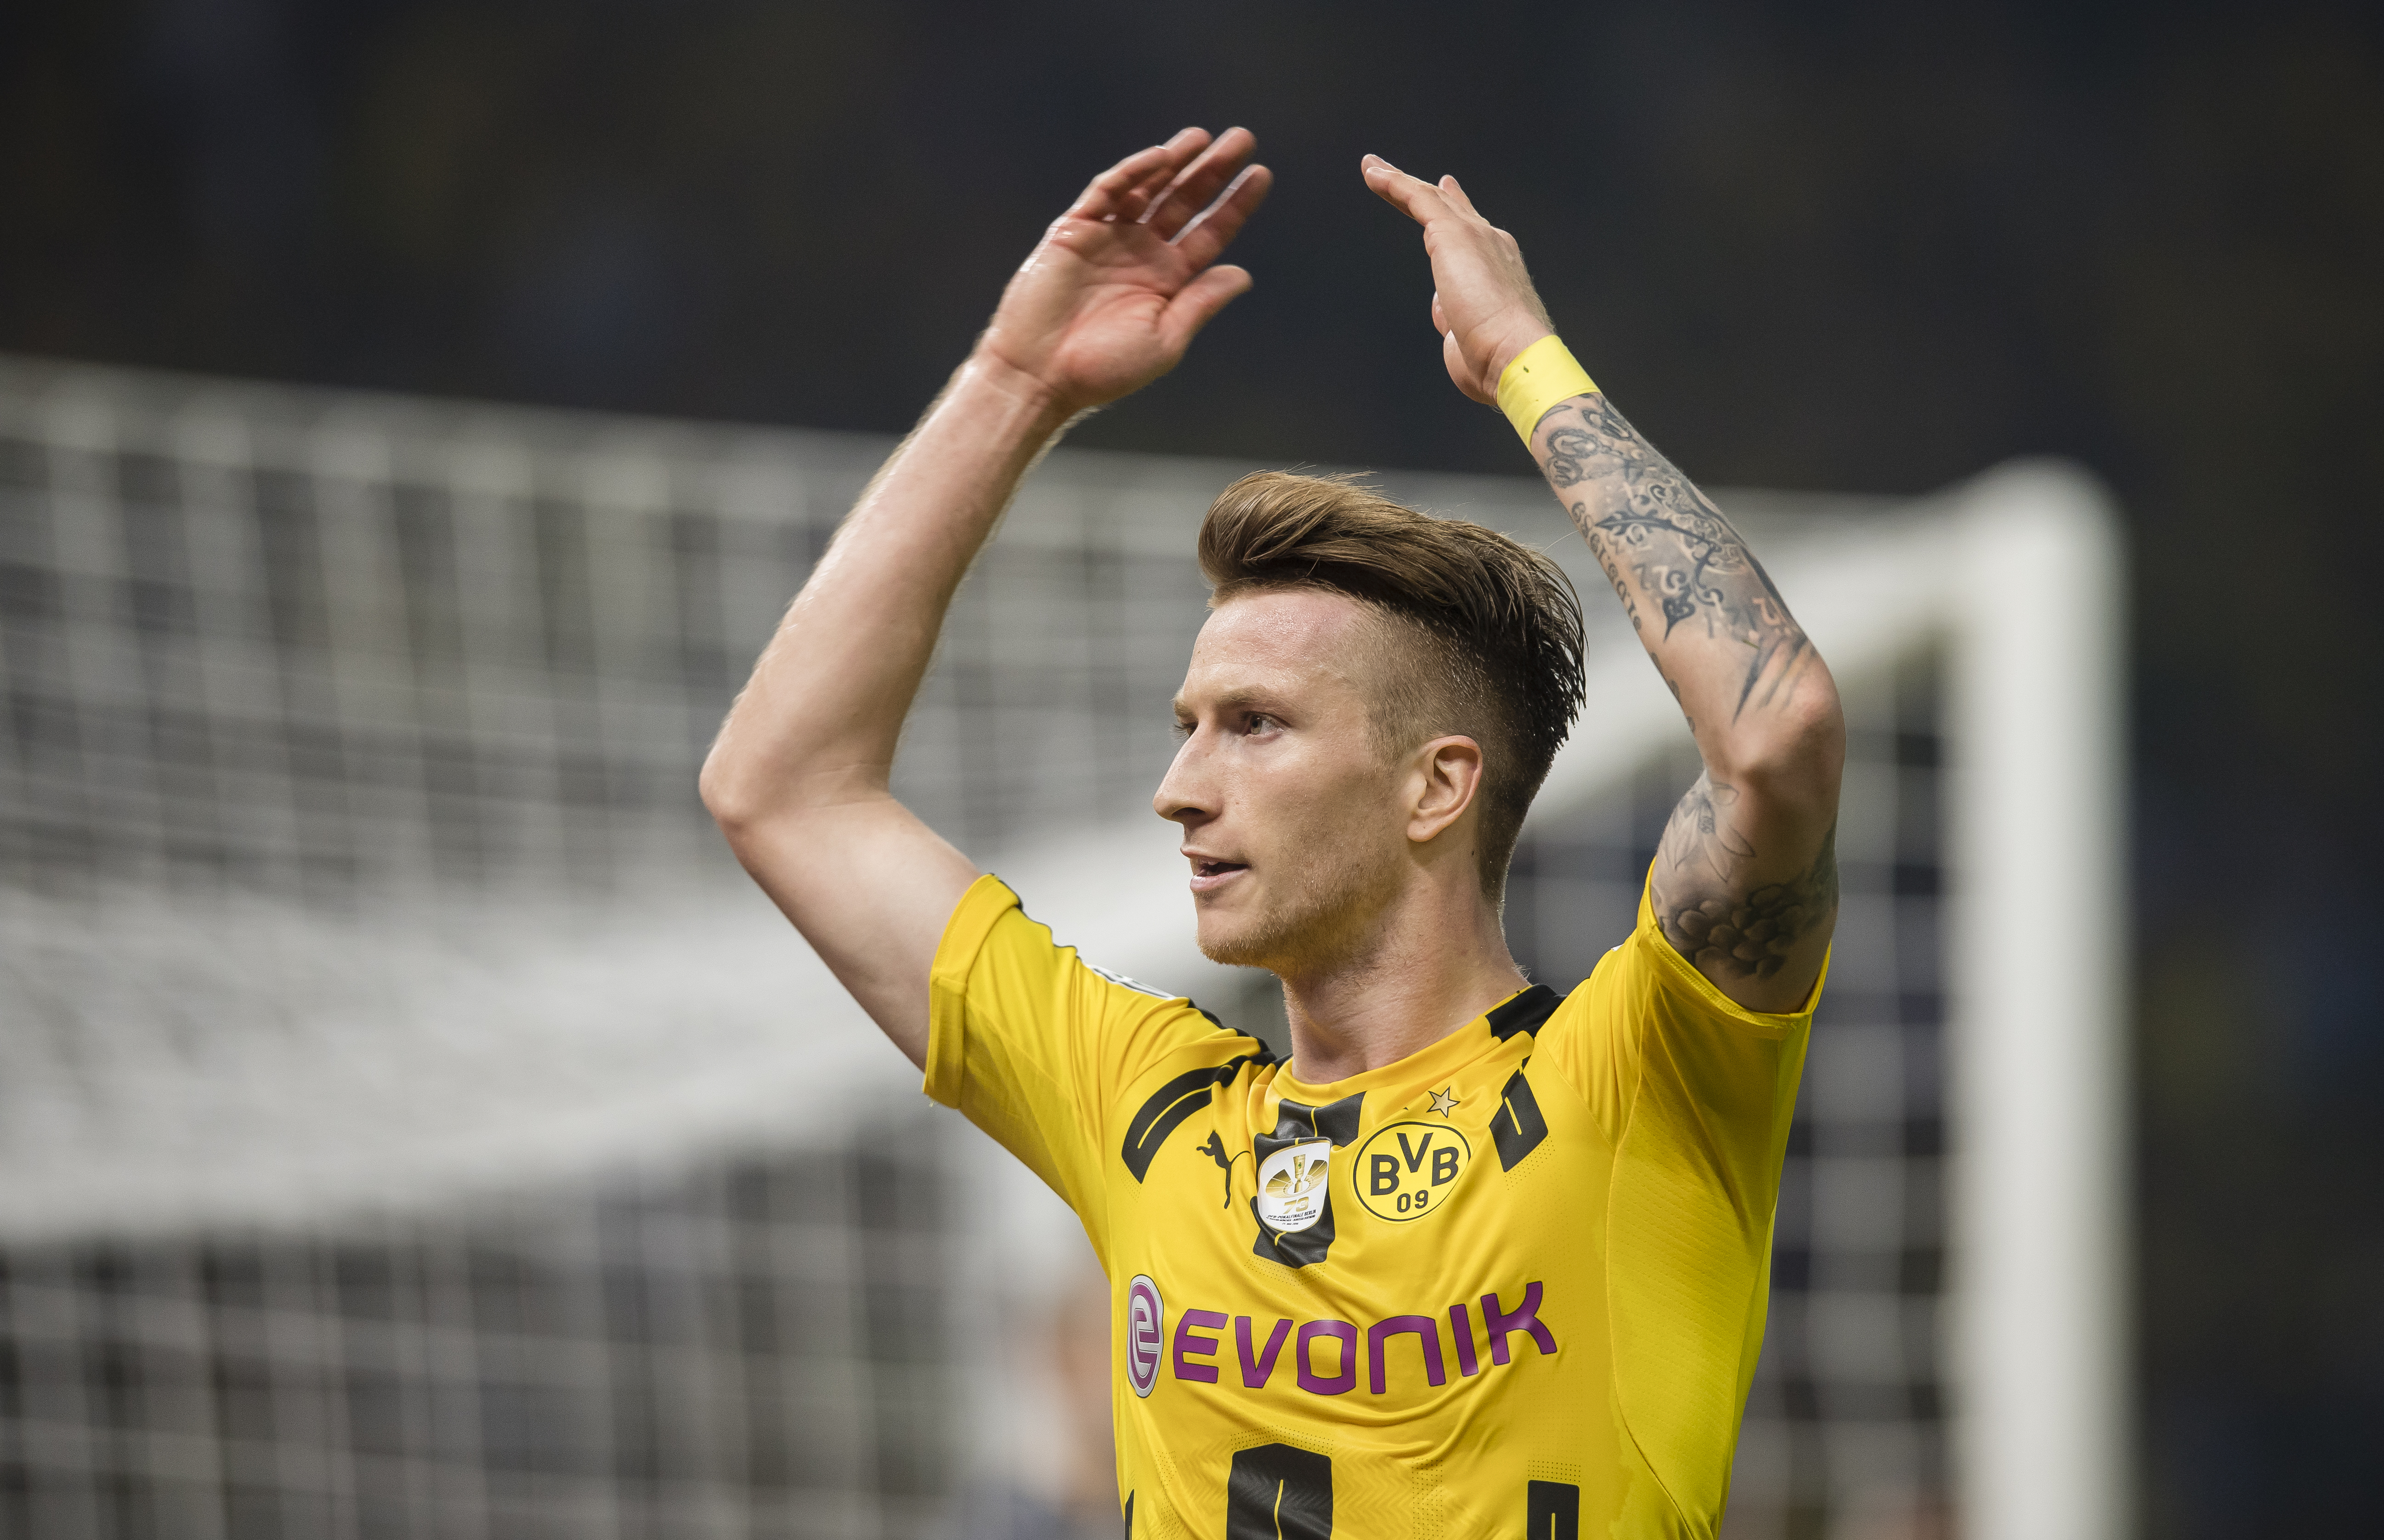 Liverpool can forget Marco Reus: Dortmund star facing six months out